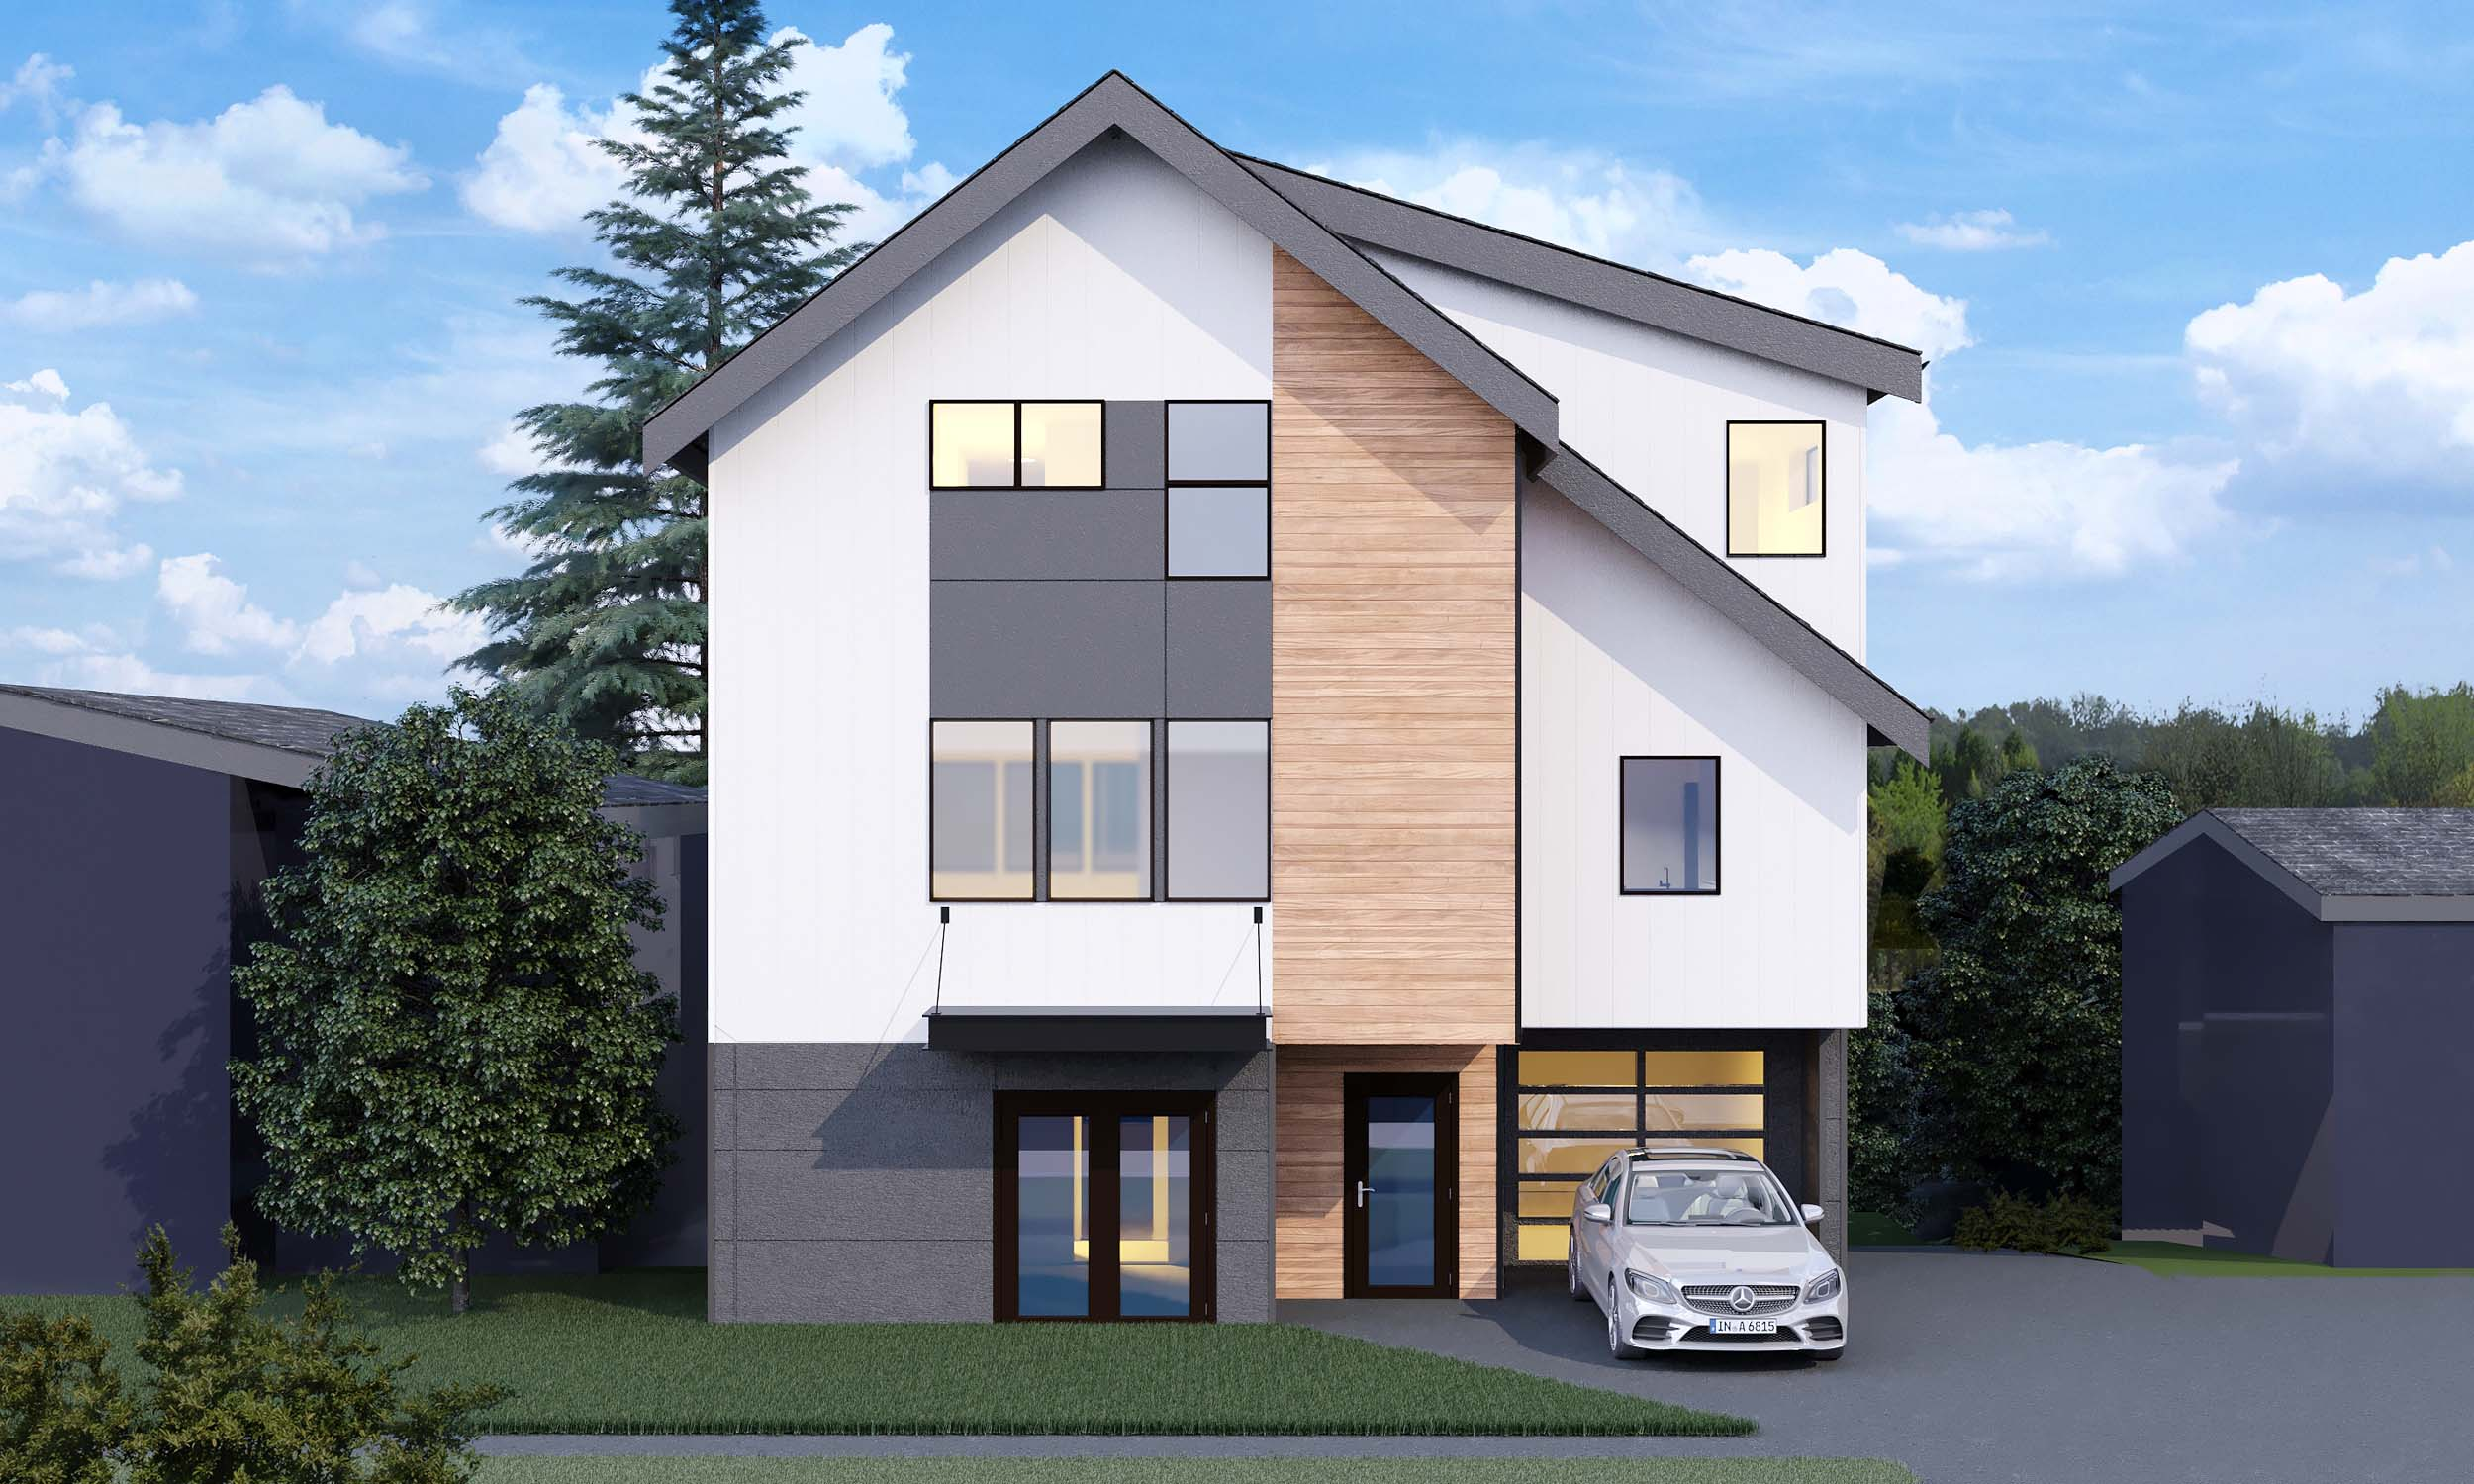 Custom design and construction of a two story single family home located at 5409 37th Ave SW, Seattle, WA 98126